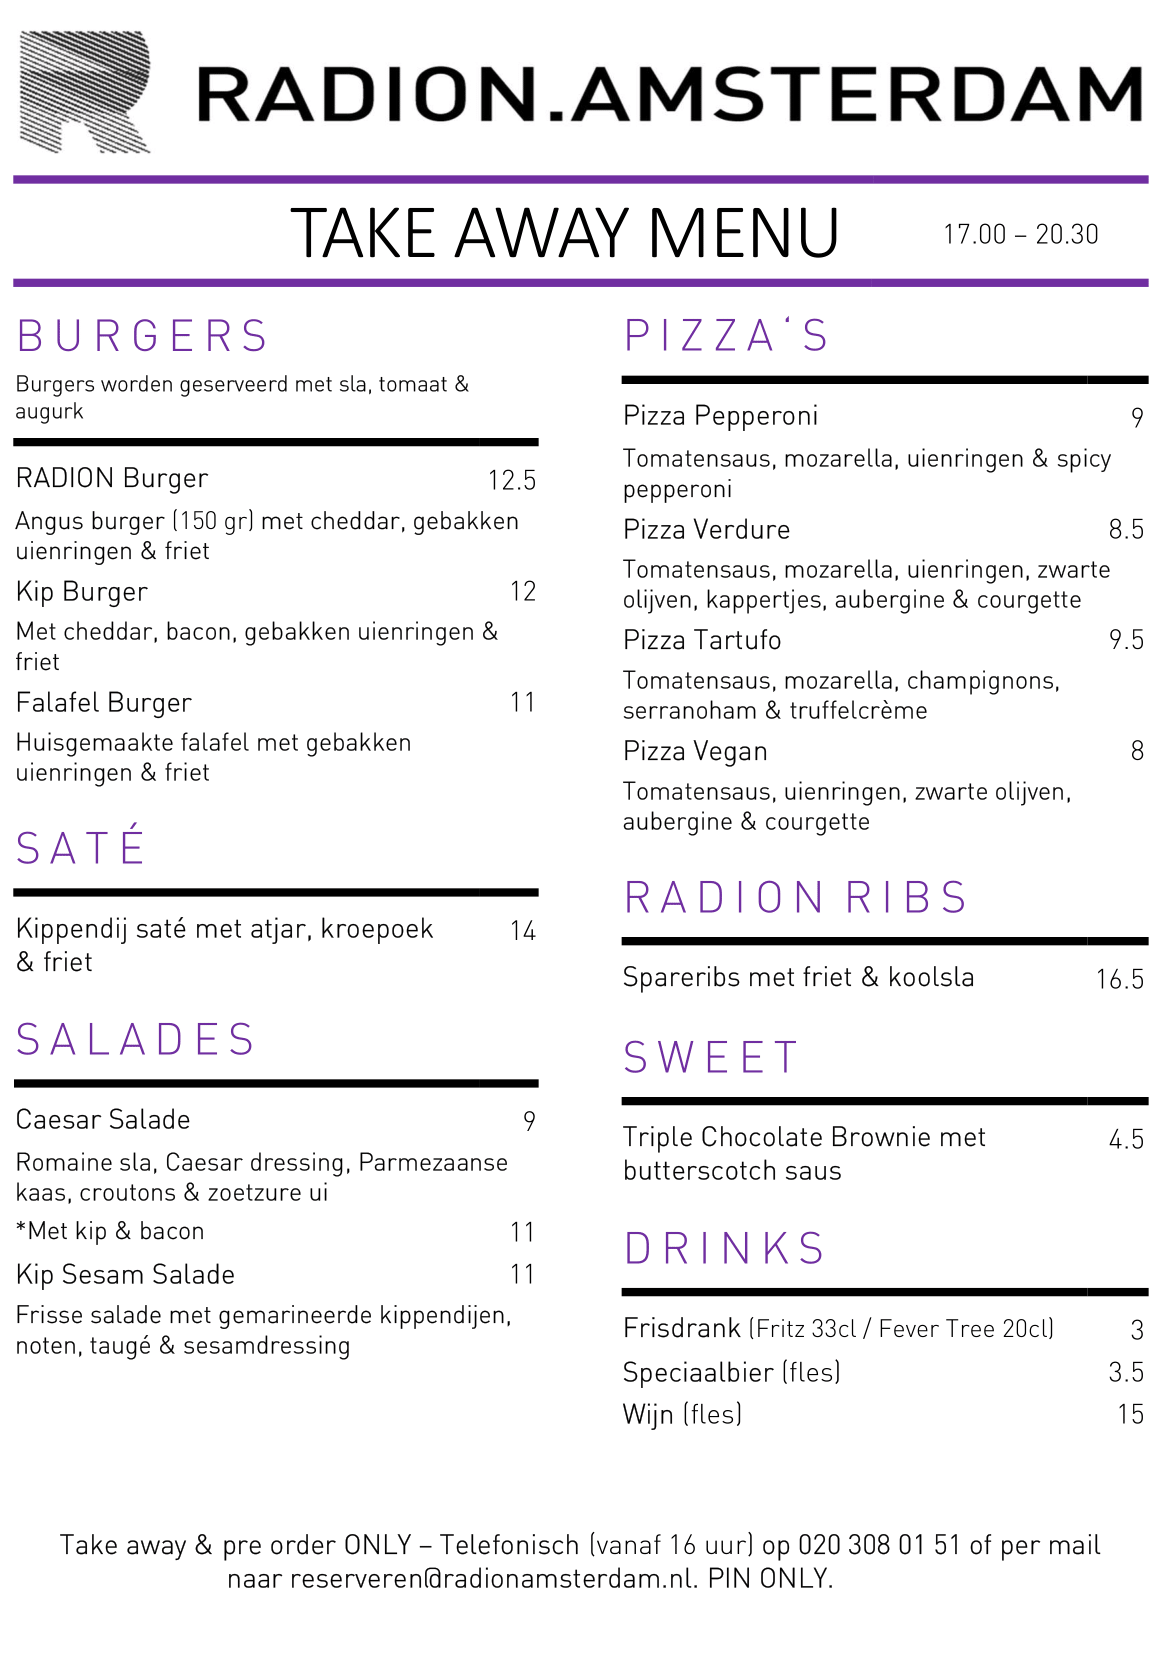 RADION-take-away-menu-PDF-22-05-2020-1.png#asset:507063